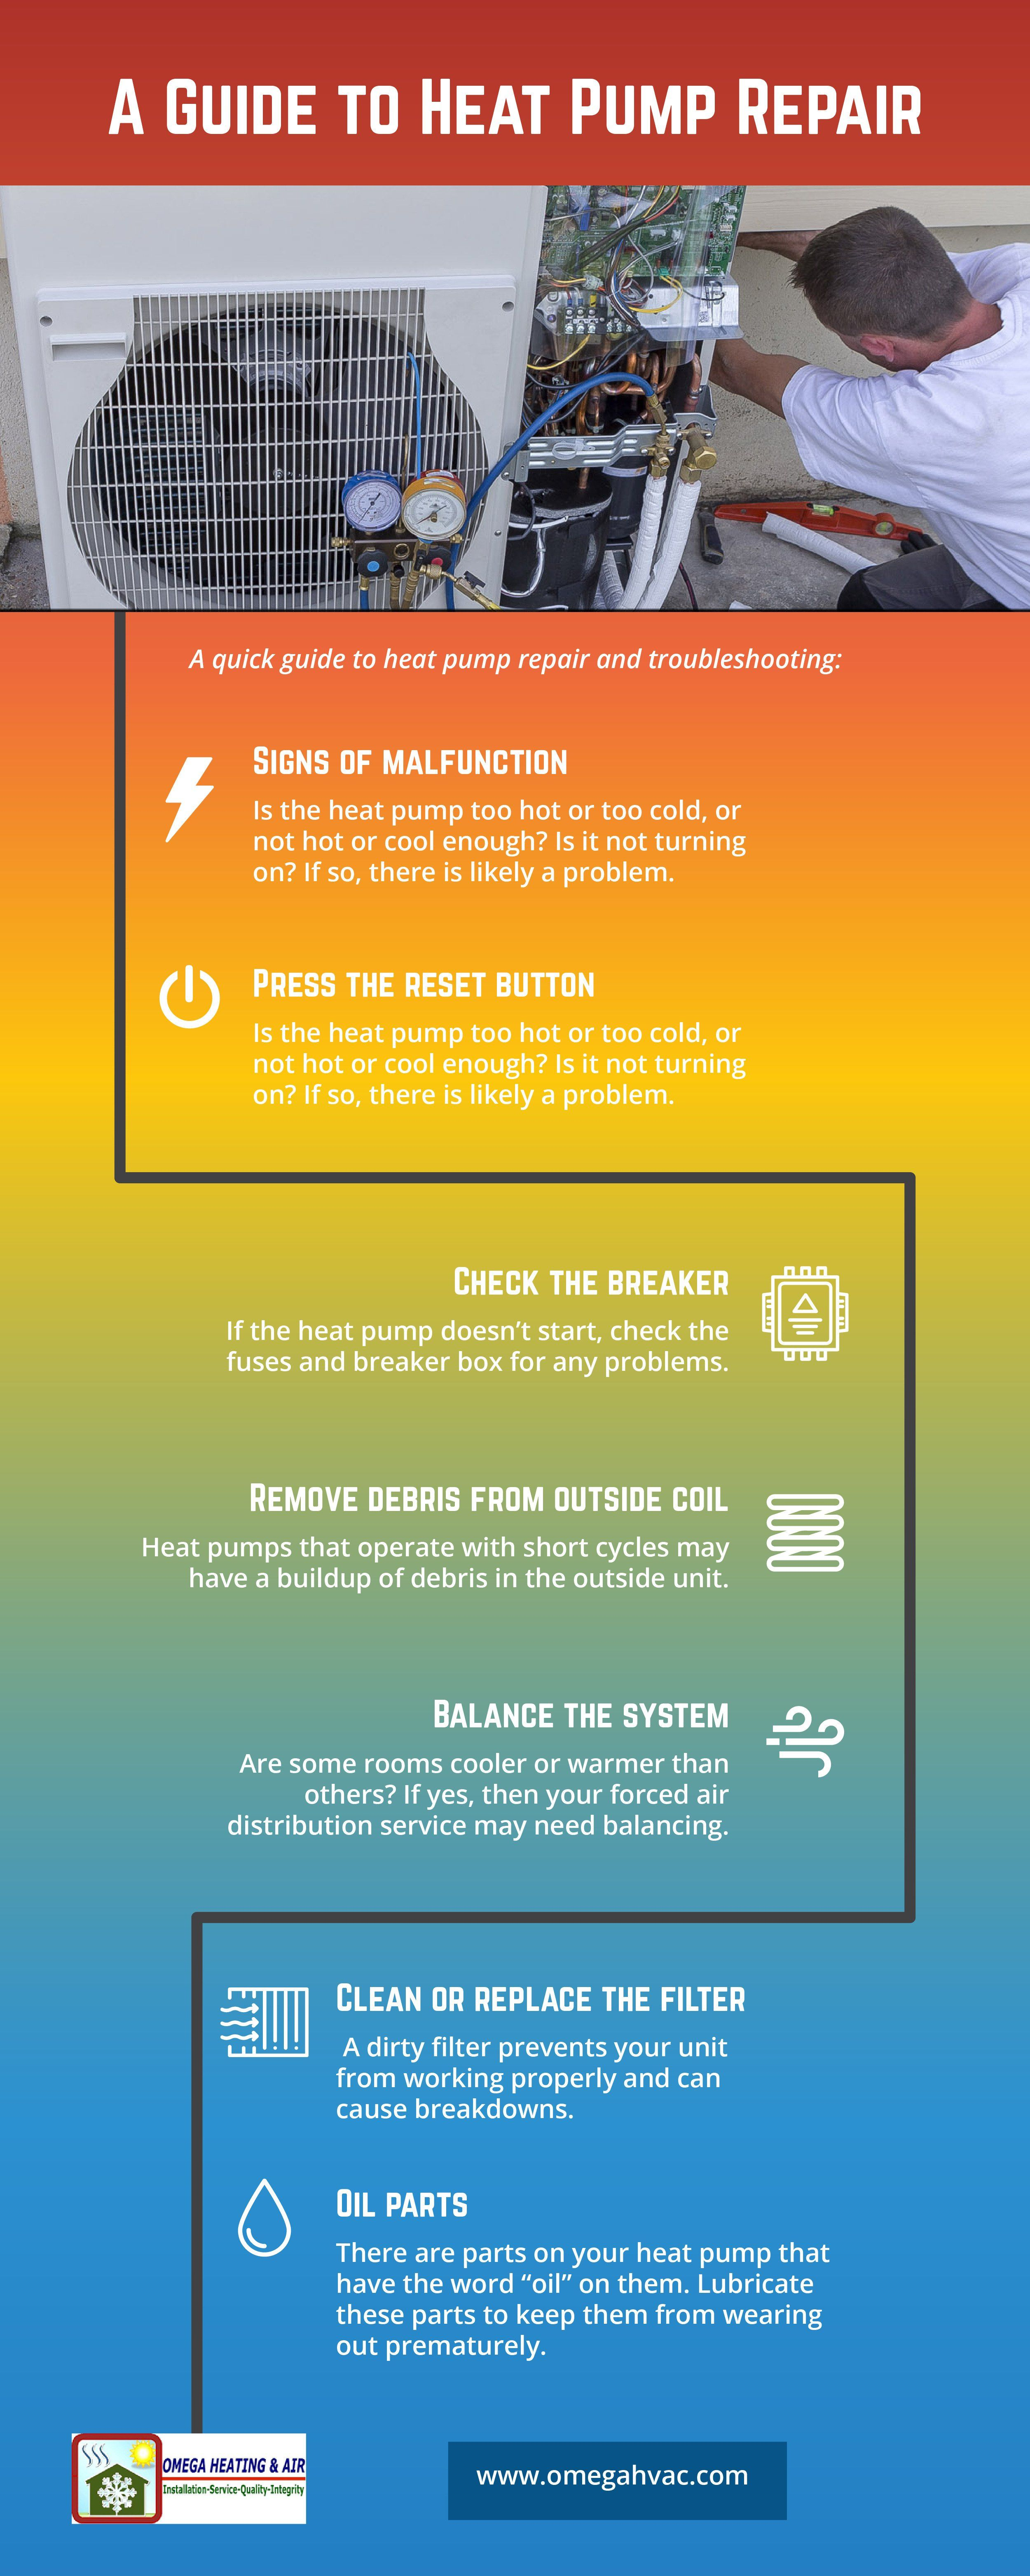 Is your heat pump not working well? Check out this quick